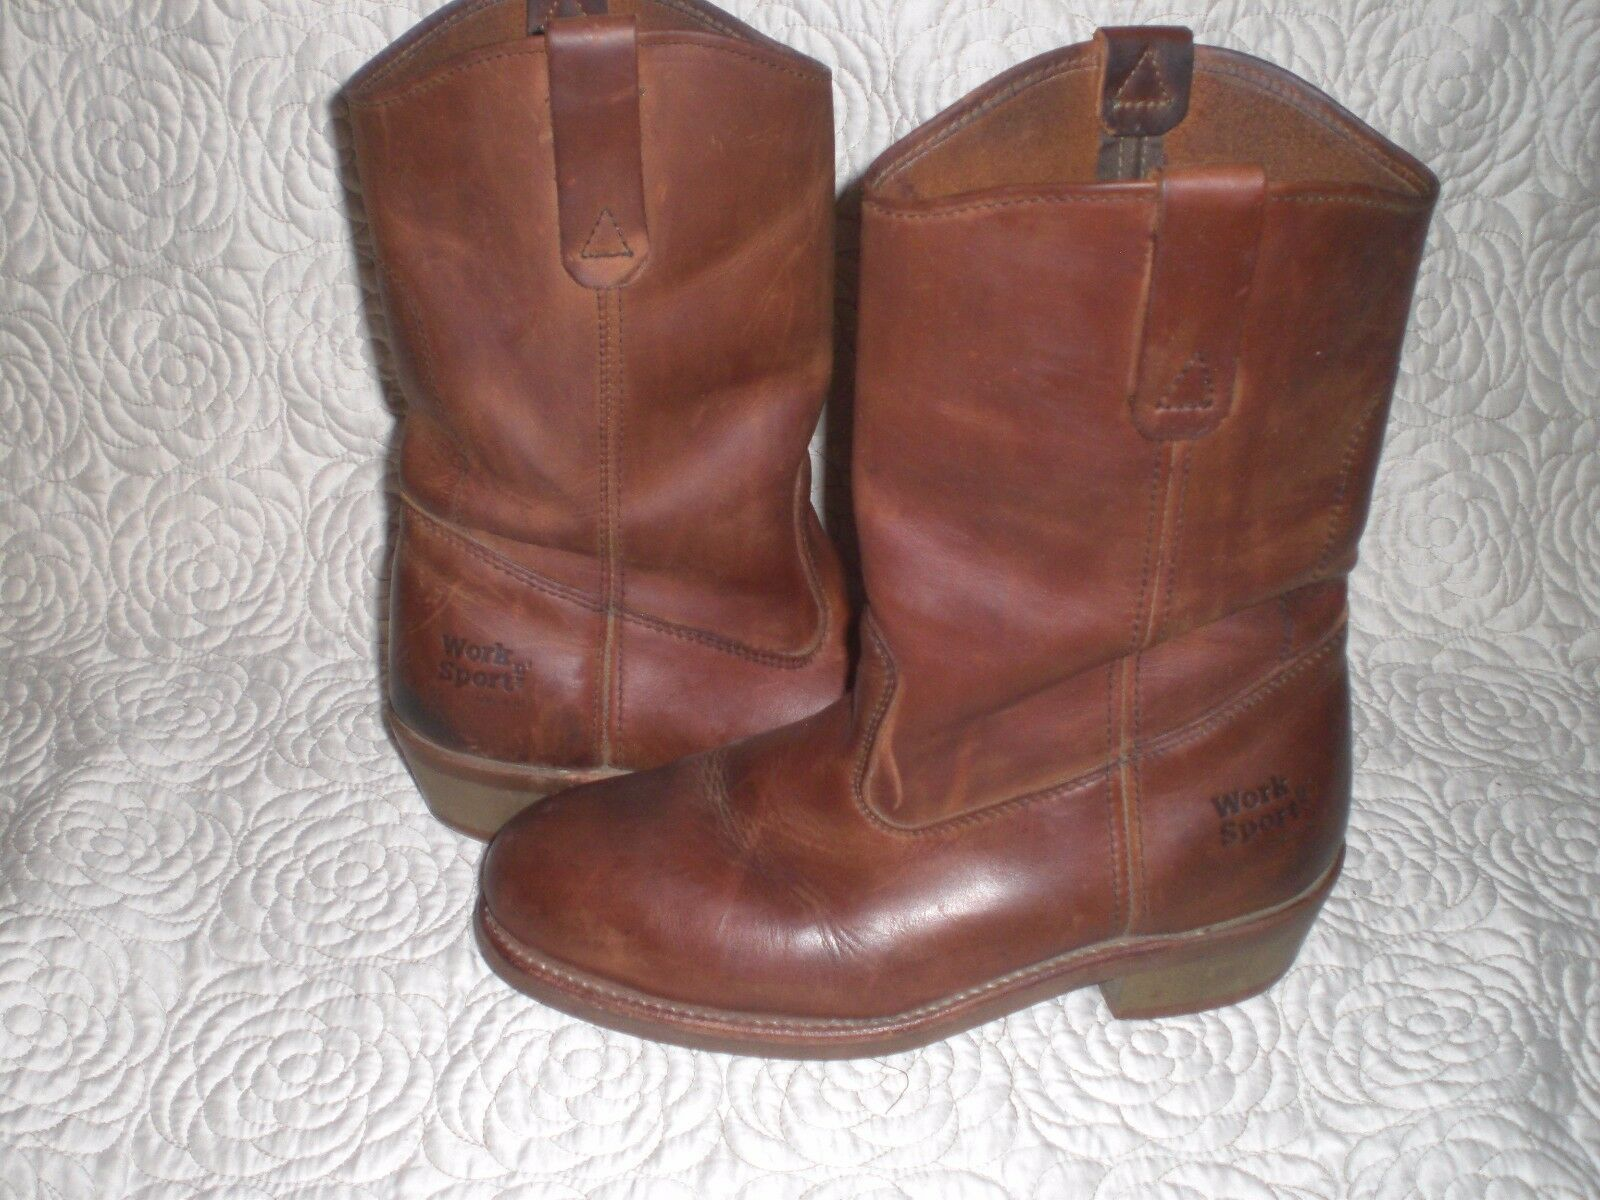 Work N Sport Brown Leather Cowboy  Work Boots Size 9 D